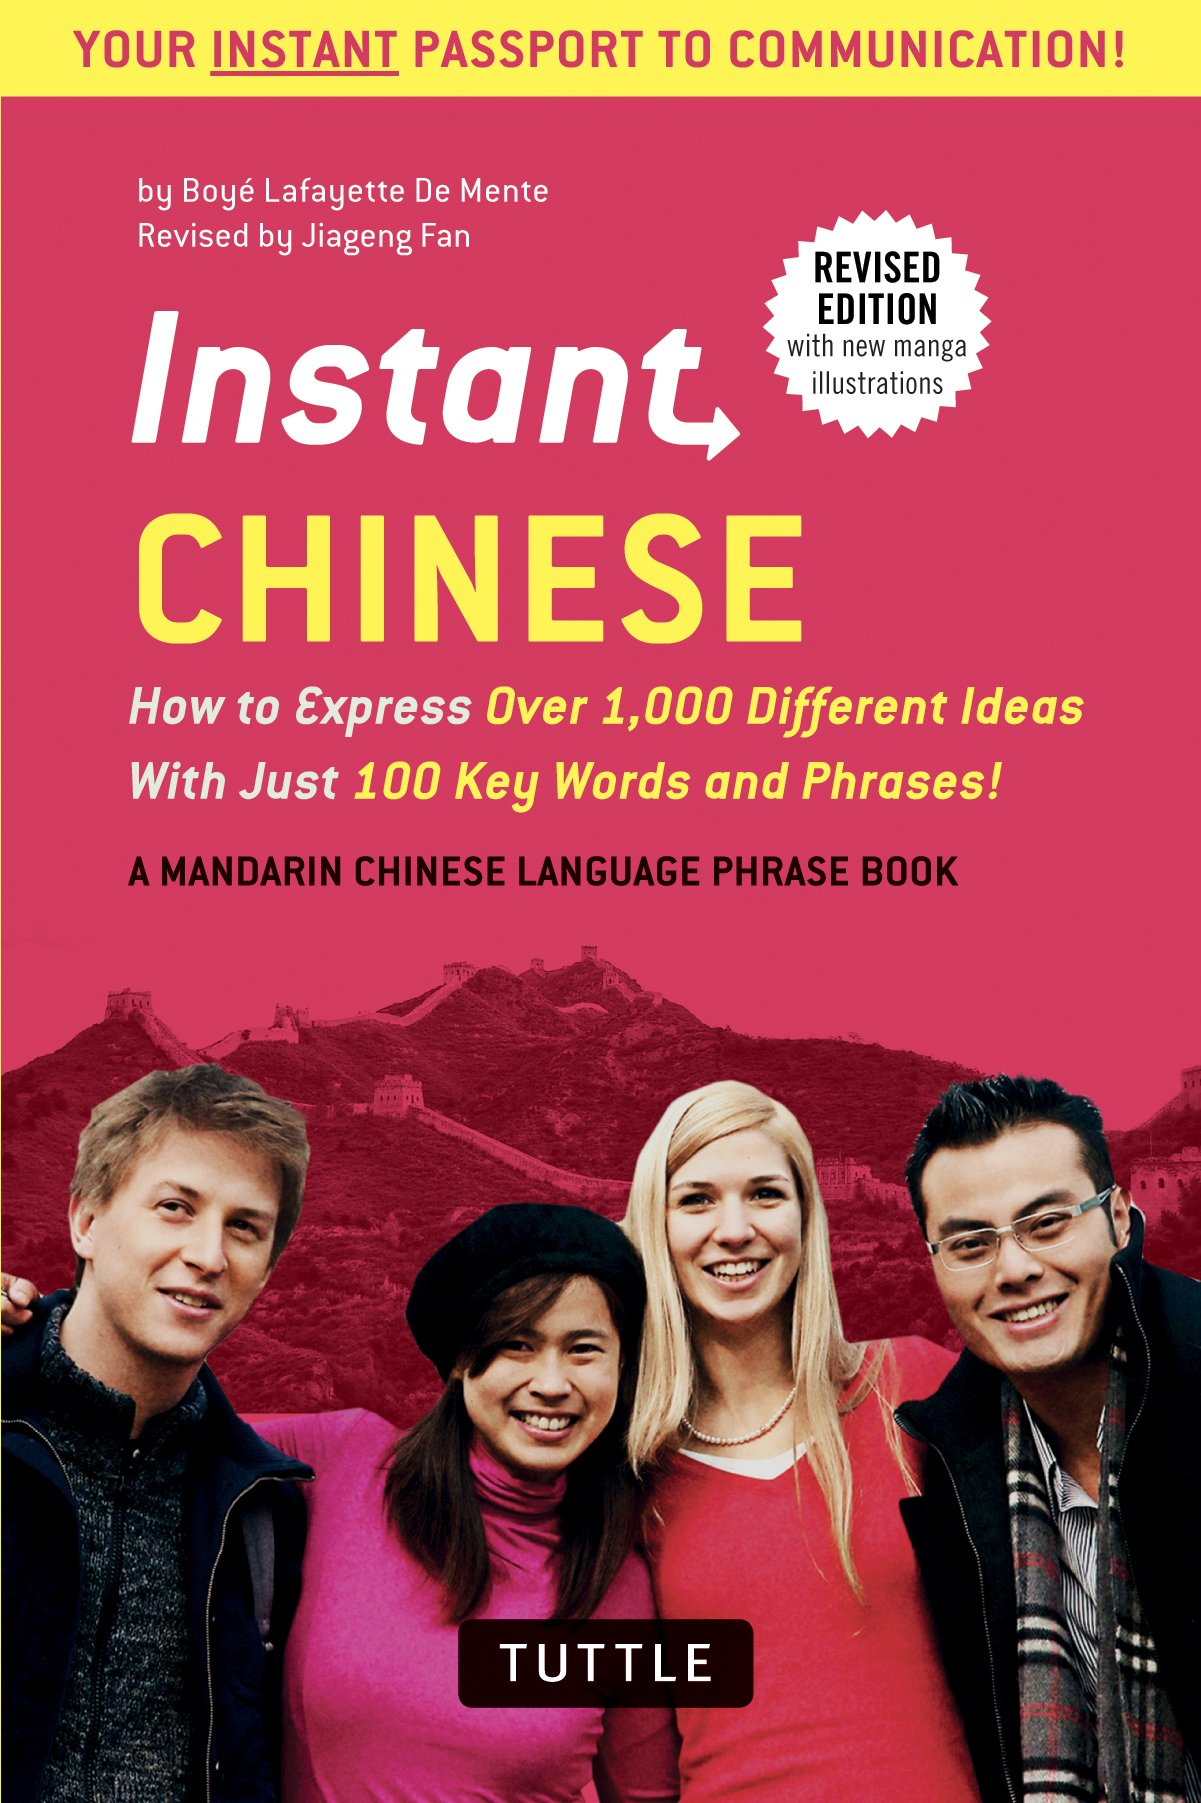 Read Online Instant Chinese: How to Express Over 1,000 Different Ideas with Just 100 Key Words and Phrases! (A Mandarin Chinese Phrasebook & Dictionary) (Instant Phrasebook Series) PDF